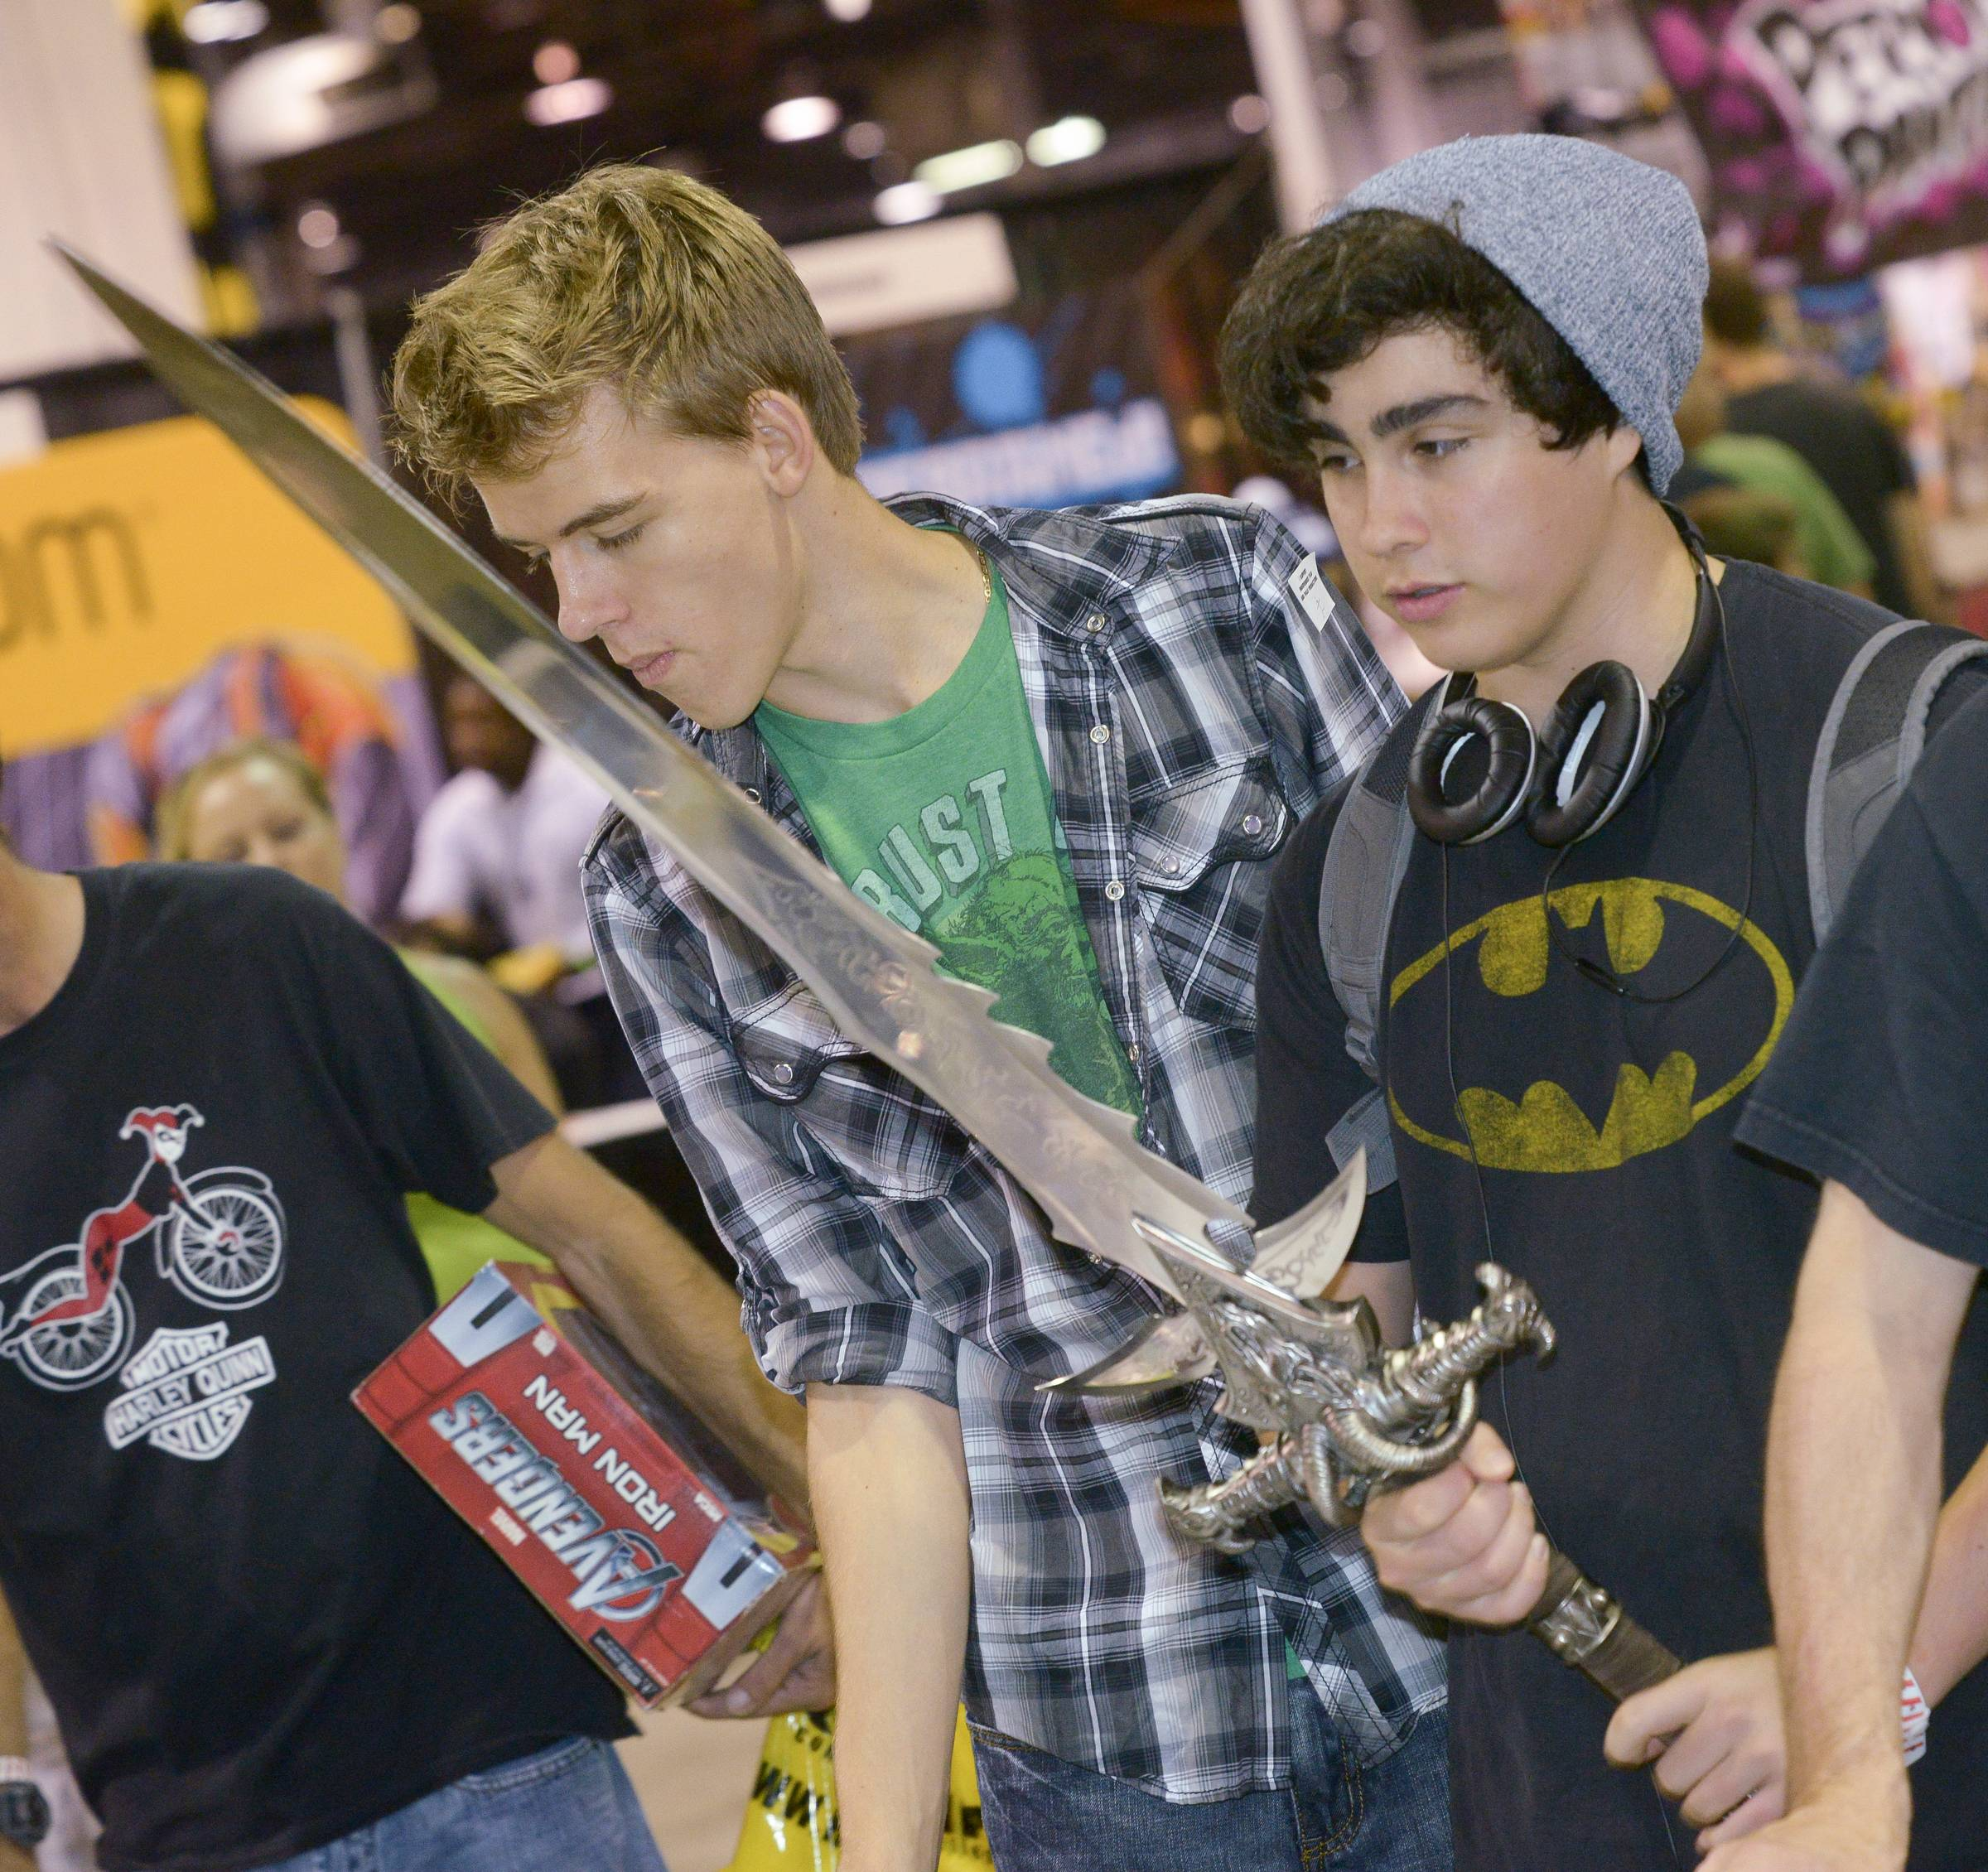 Mark Black/mblack@dailyherald.comAidean Lynch of Bloomington, Indiana, checks out a sword Saturday during the Comic Con convention at the Donald E. Stephens Convention Center in Rosemont.